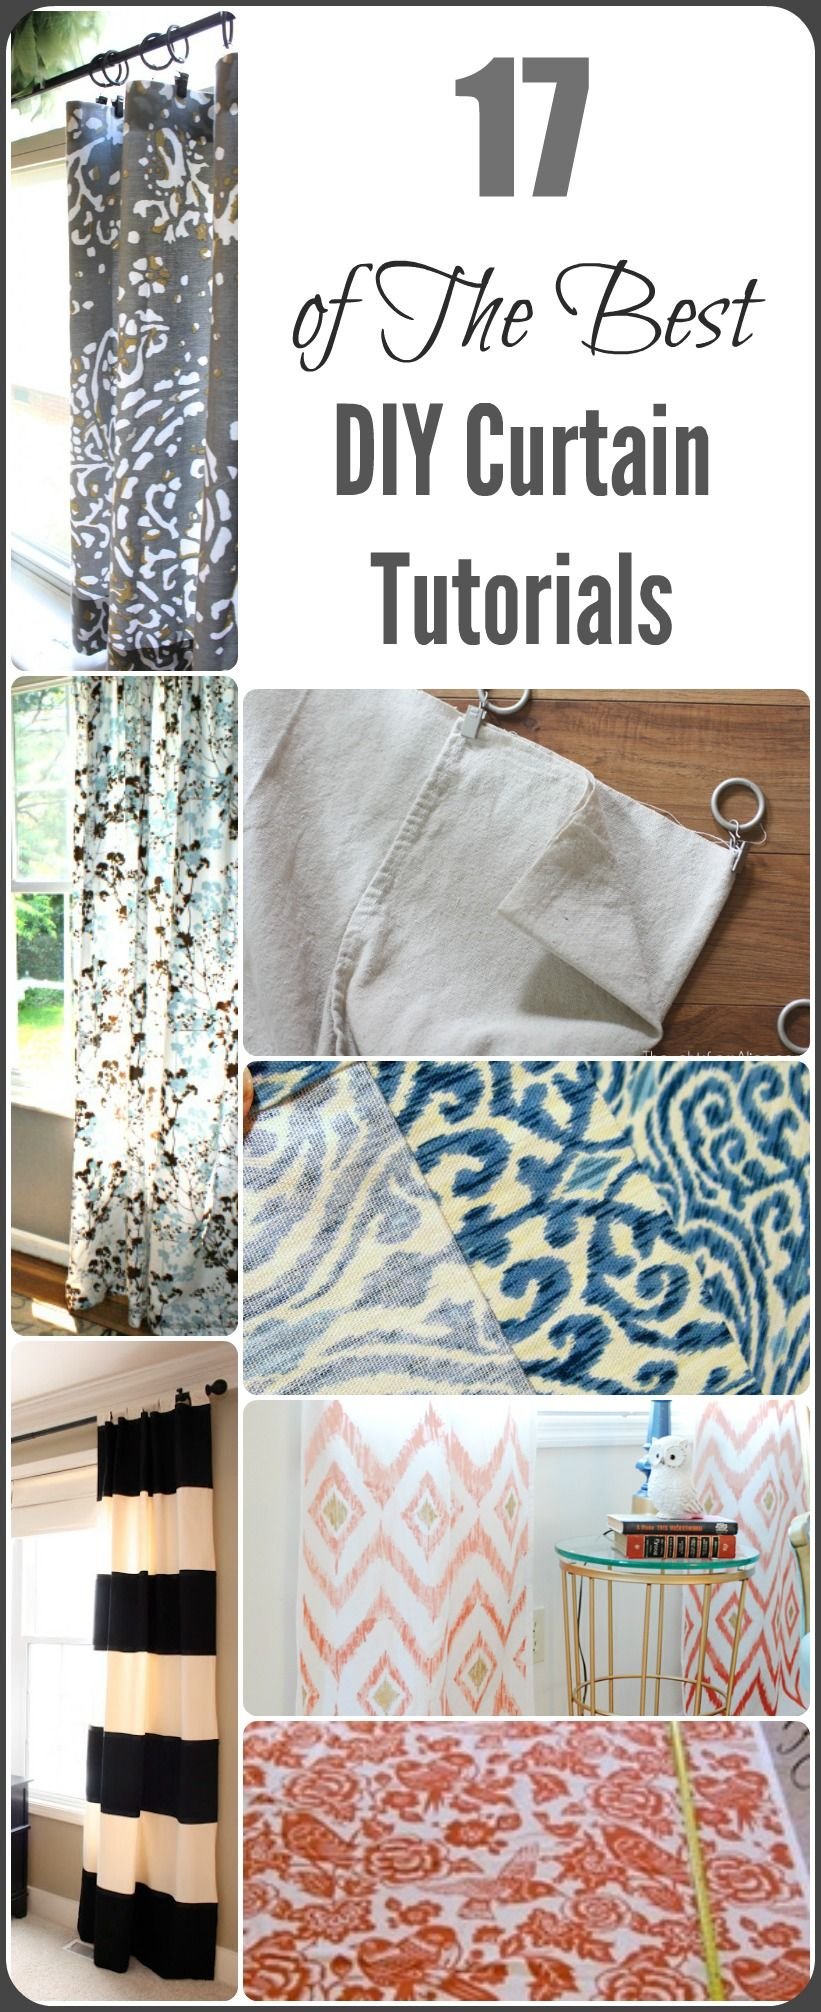 Diy curtain ideas and tutorials diy curtains curtain ideas and